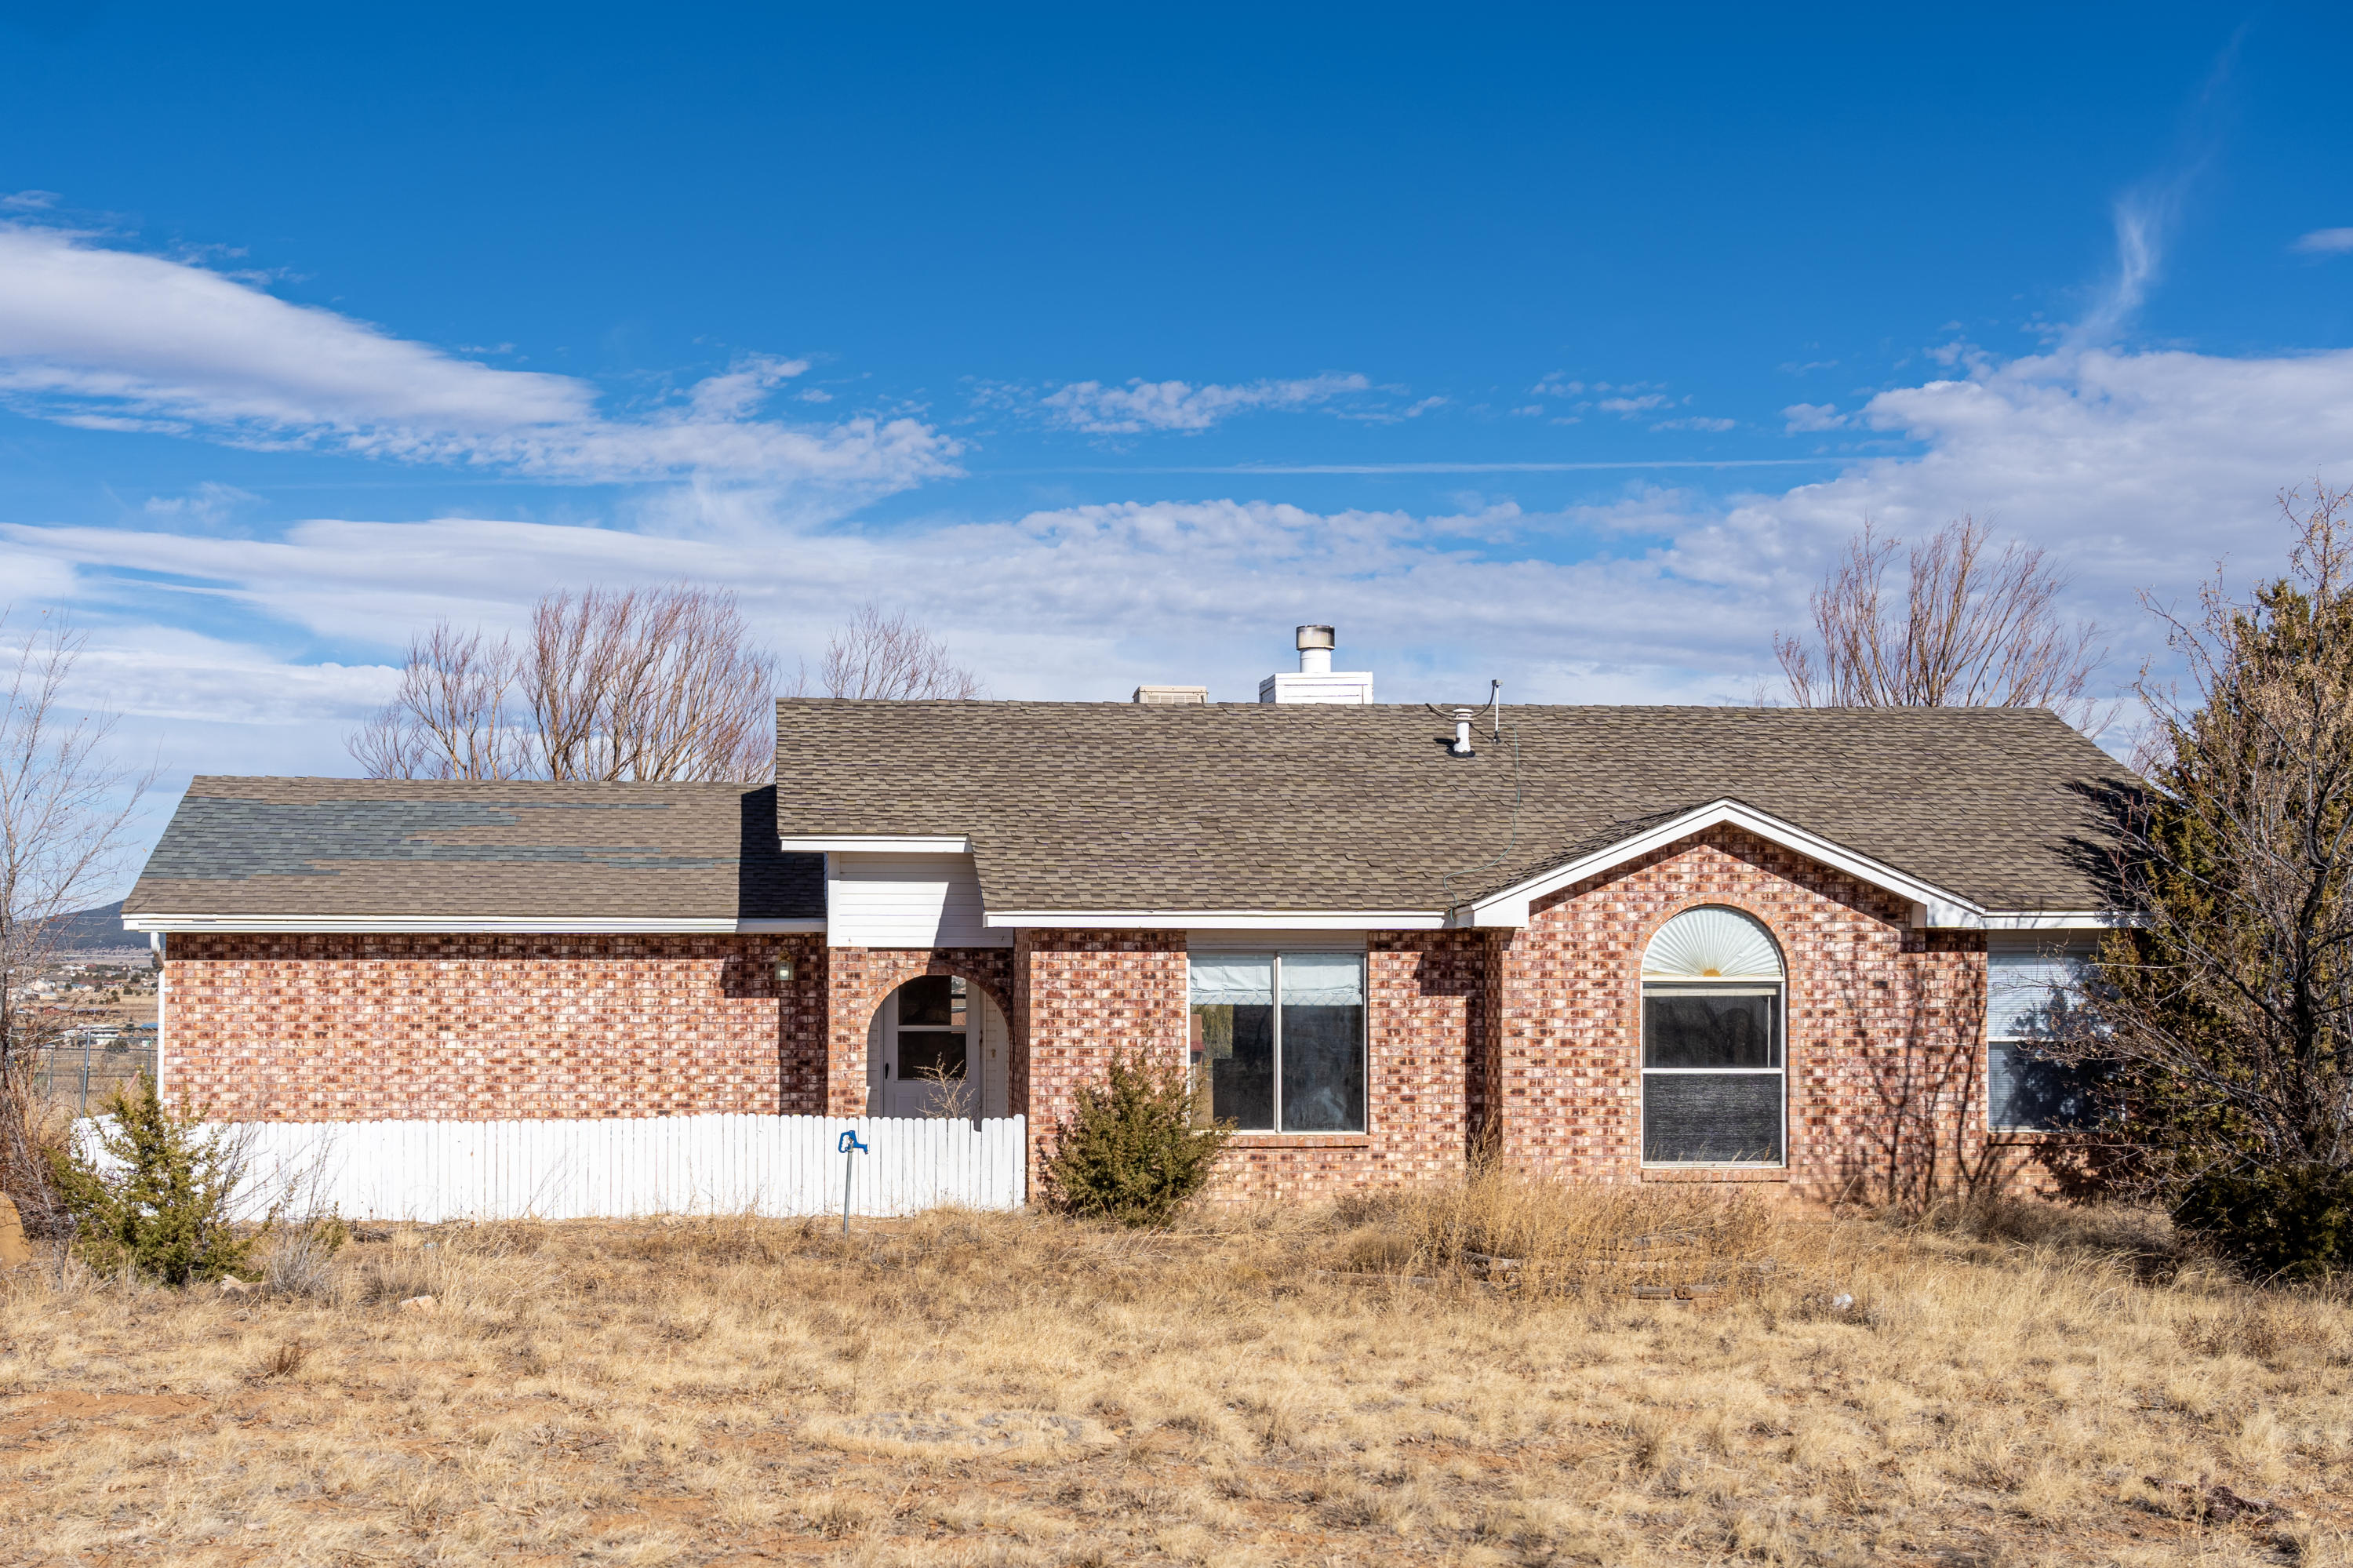 Newly updated, light filled, 3 bedroom, 2 bath home on an acre is waiting for you! All appliances stay with the home! Converted garage with private entrance allows for a second living space or an office! Great views of South Mountain from the spacious fulled fenced backyard!